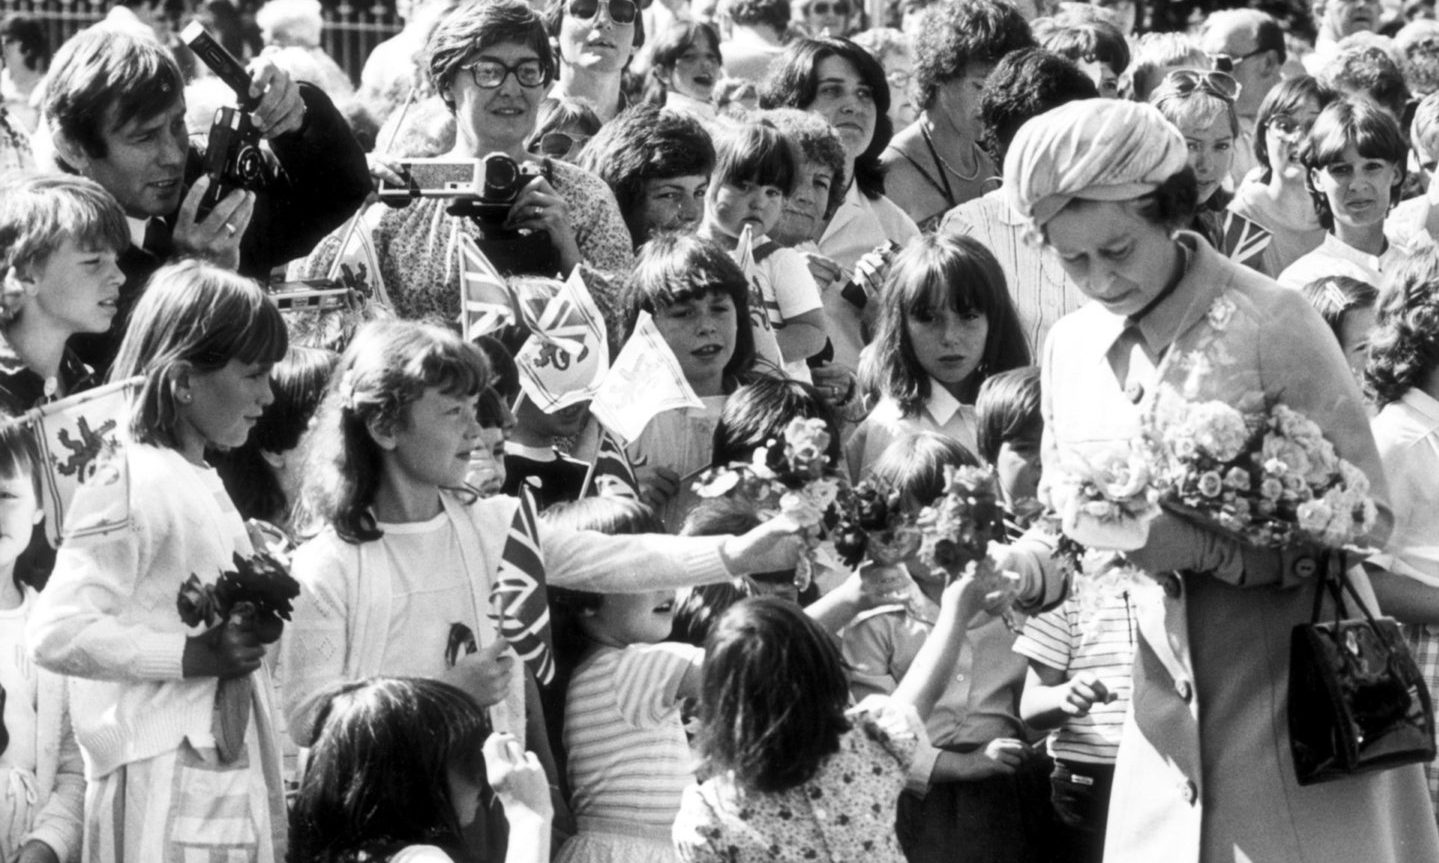 Youngsters with posies surround the Queen at the opening of Aberdeen's Queen Elizabeth Bridge in August, 1984. The Queen opened the £5.7 million bridge which is named after her. It replaced the Wellington Suspension Bridge over the Dee  between Torry and Ferryhill.